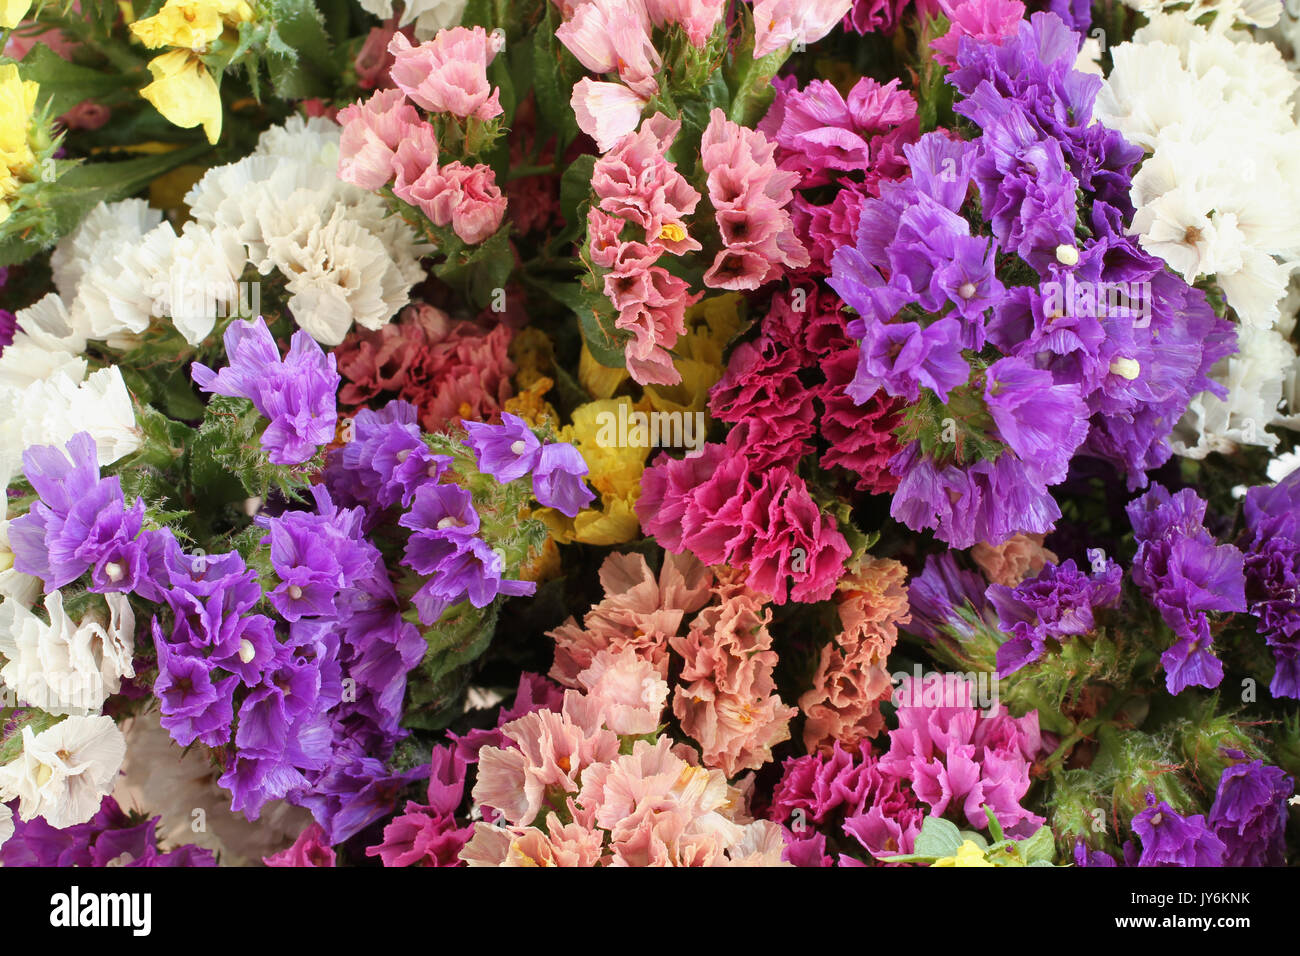 Pink  purple  yellow  white Statice flowers   Limonium Background     Pink  purple  yellow  white Statice flowers   Limonium Background